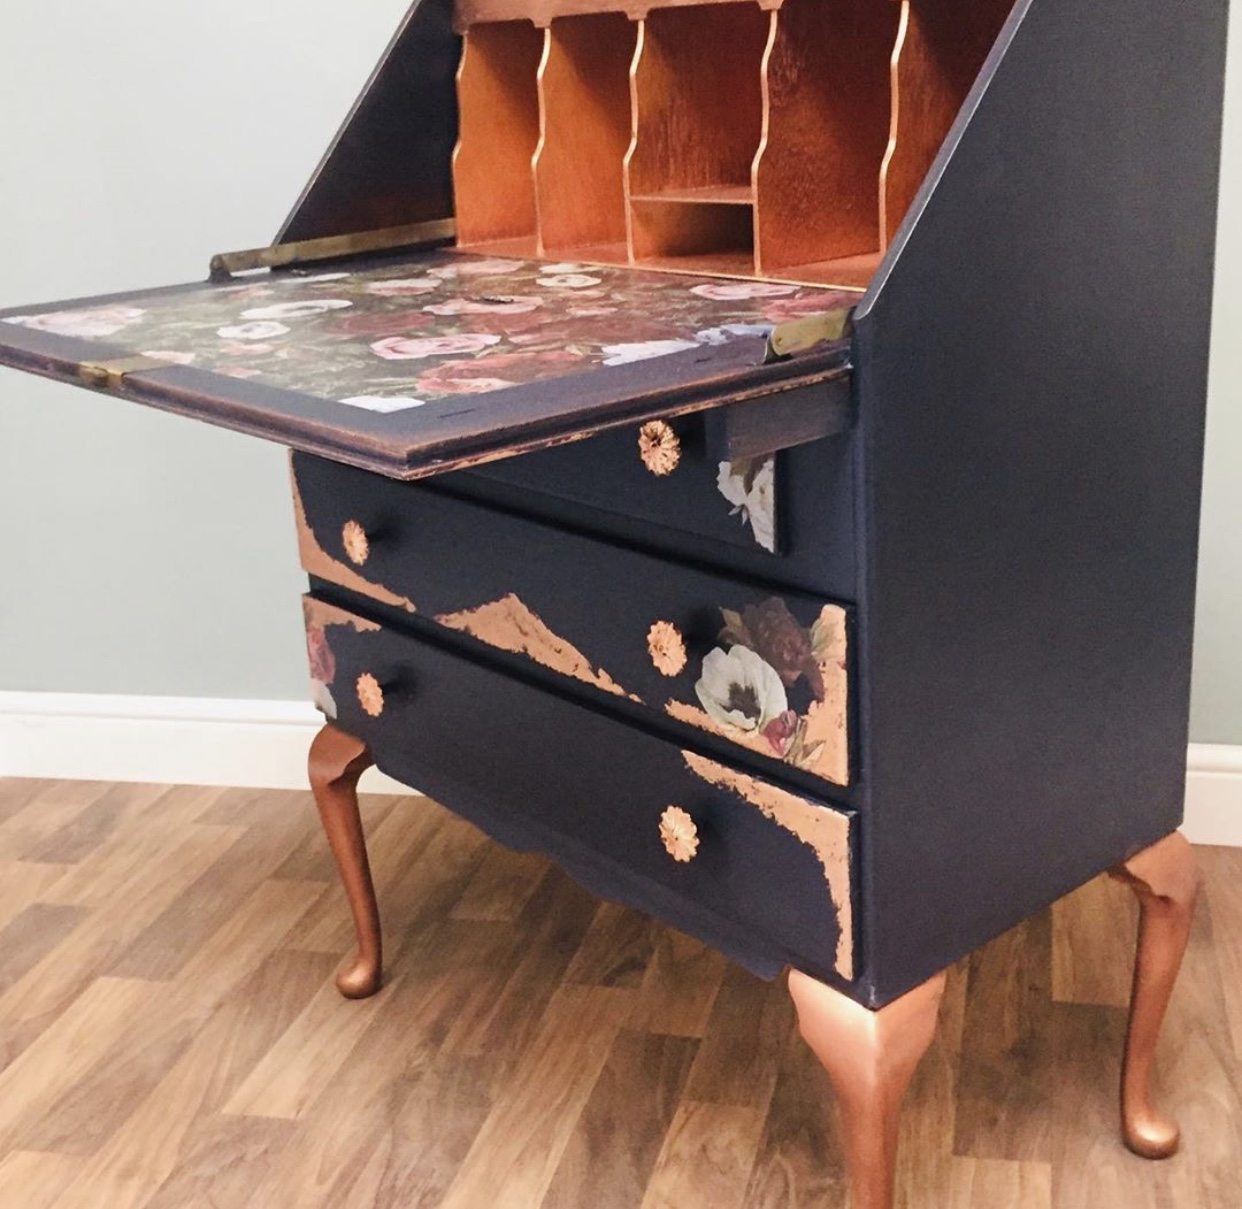 The Little Bureau representing Hope and New beginnings